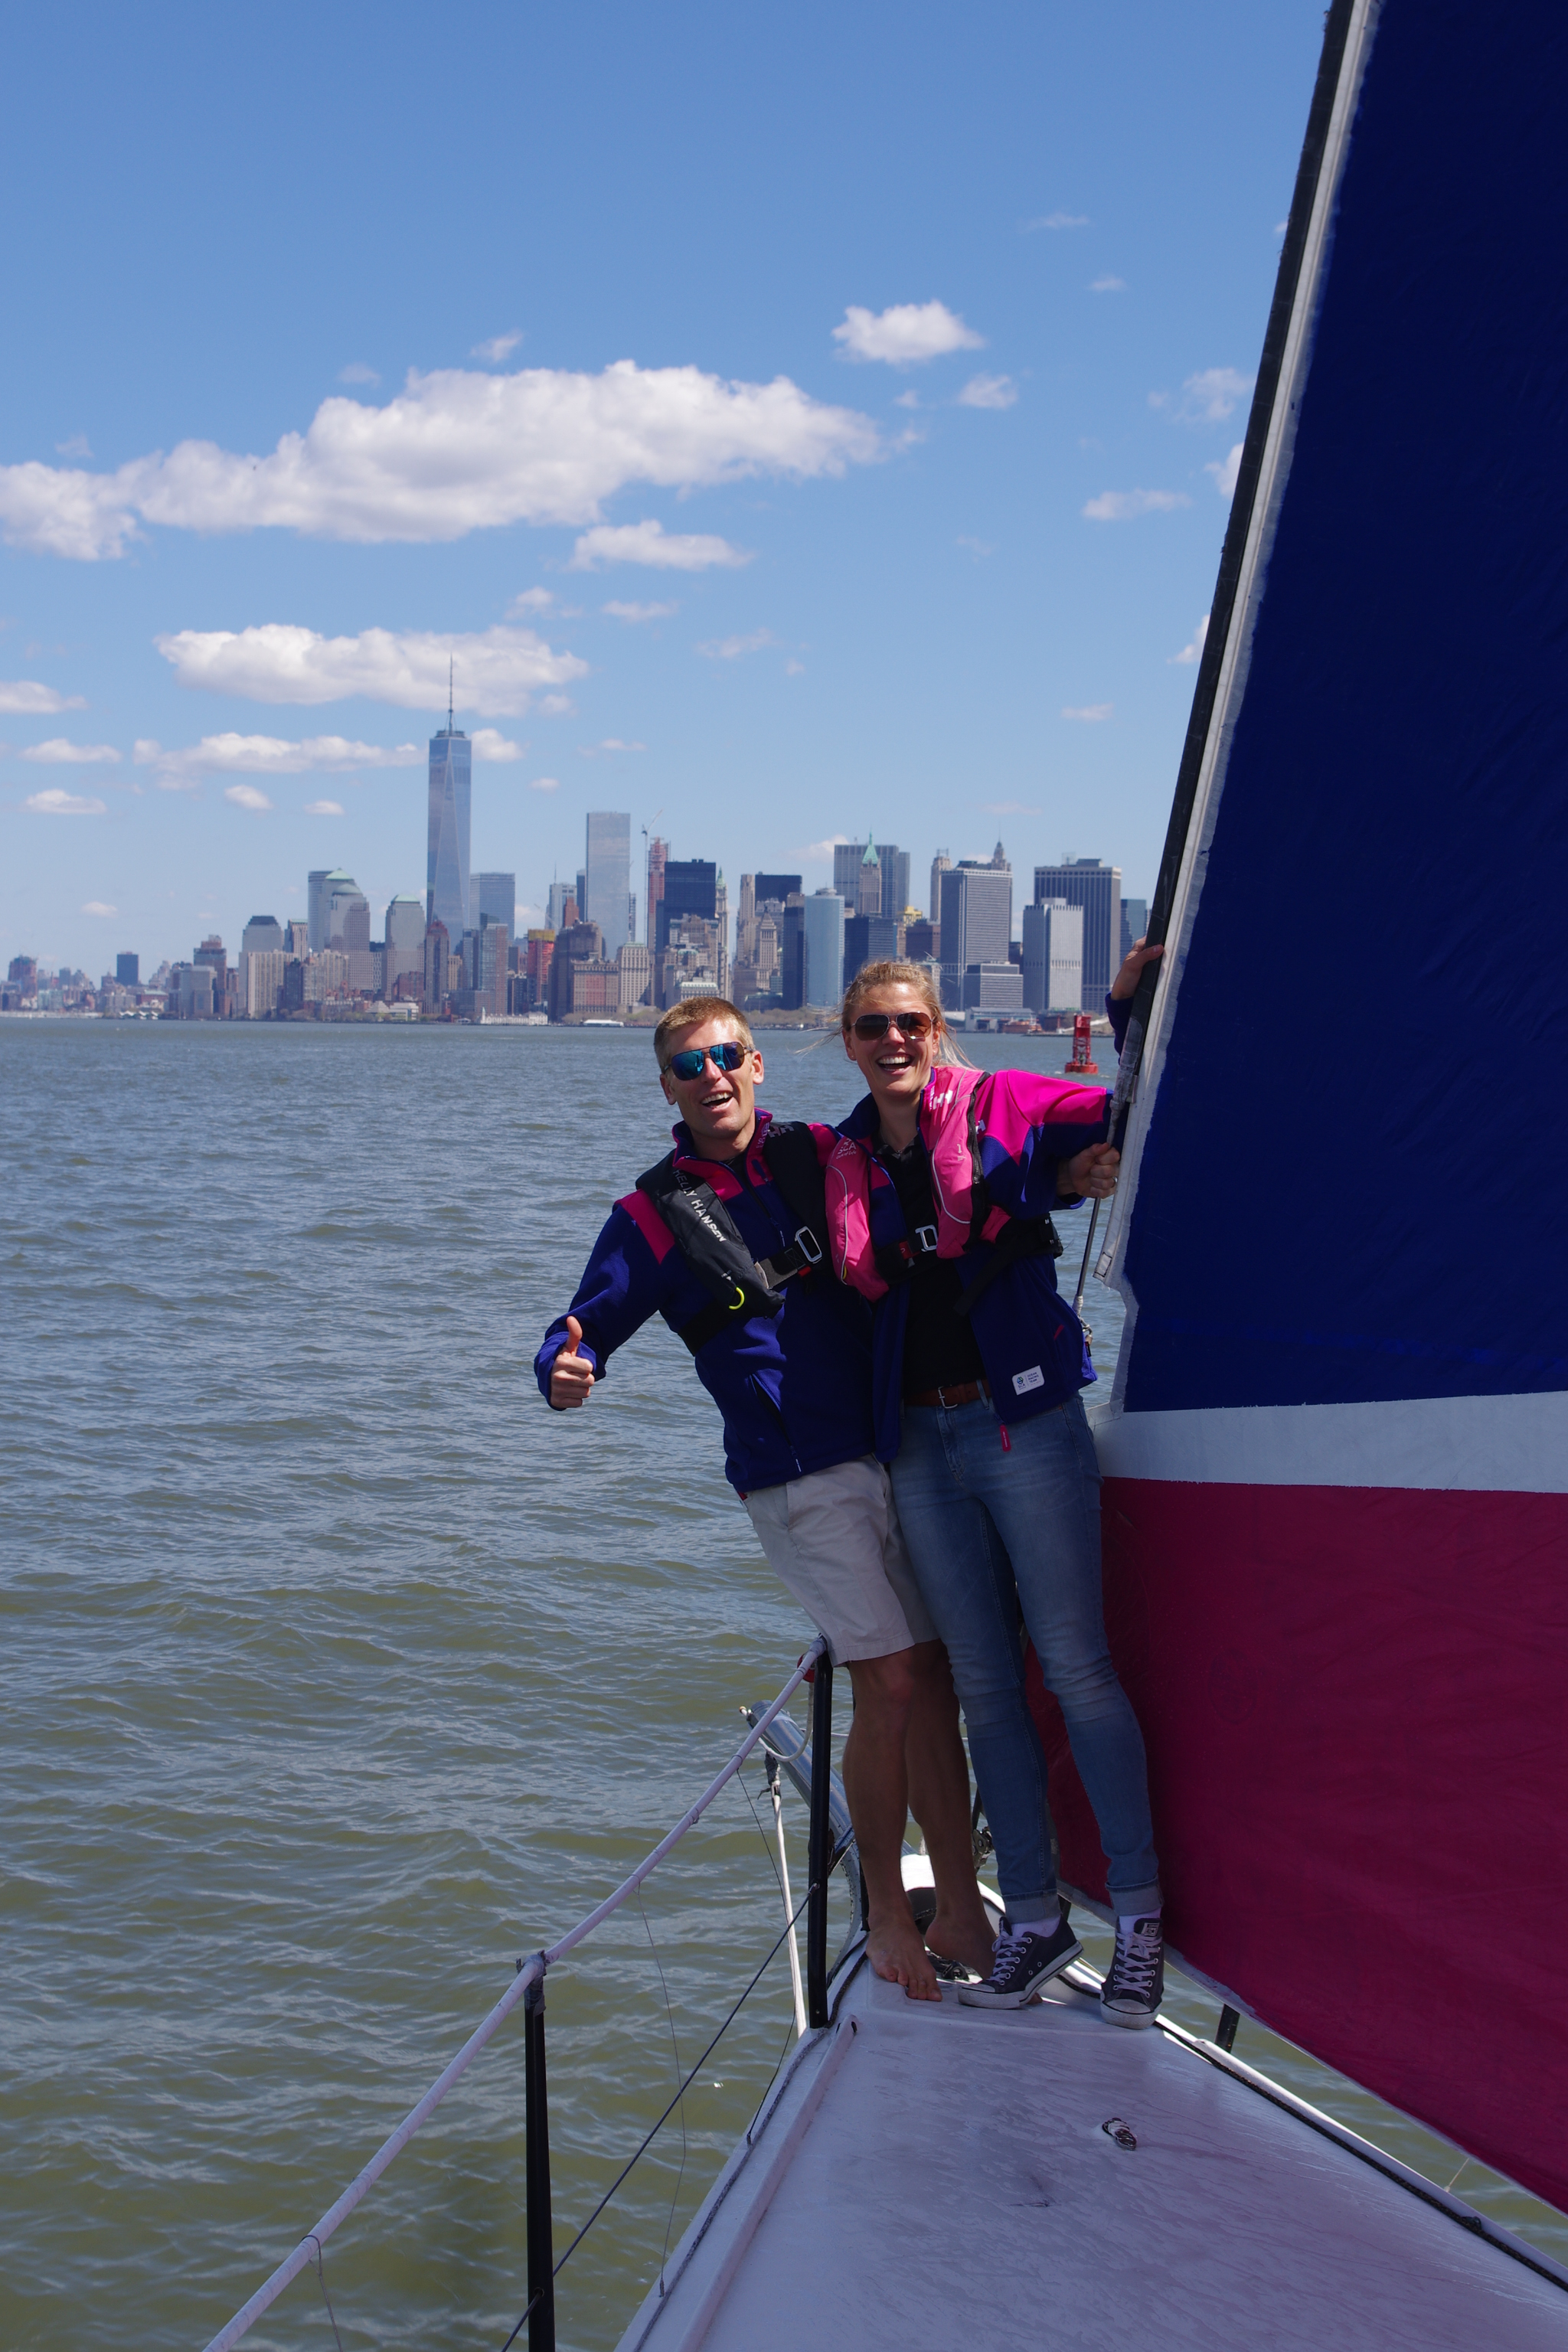 Sailed on a TP52 with some of the Team SCA girls in New York Harbor.